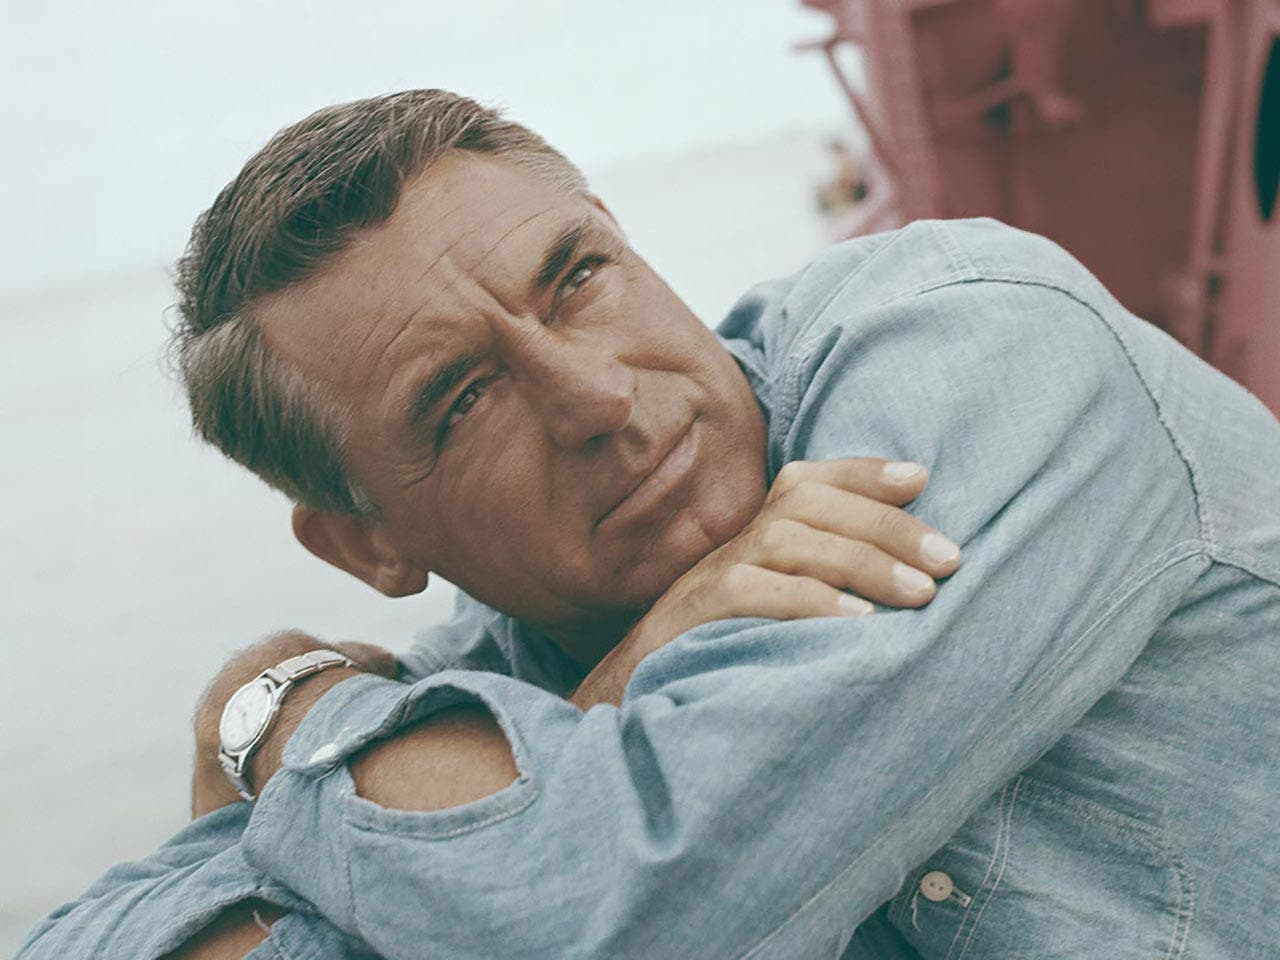 Cary Grant | Archive Photos/Getty Images